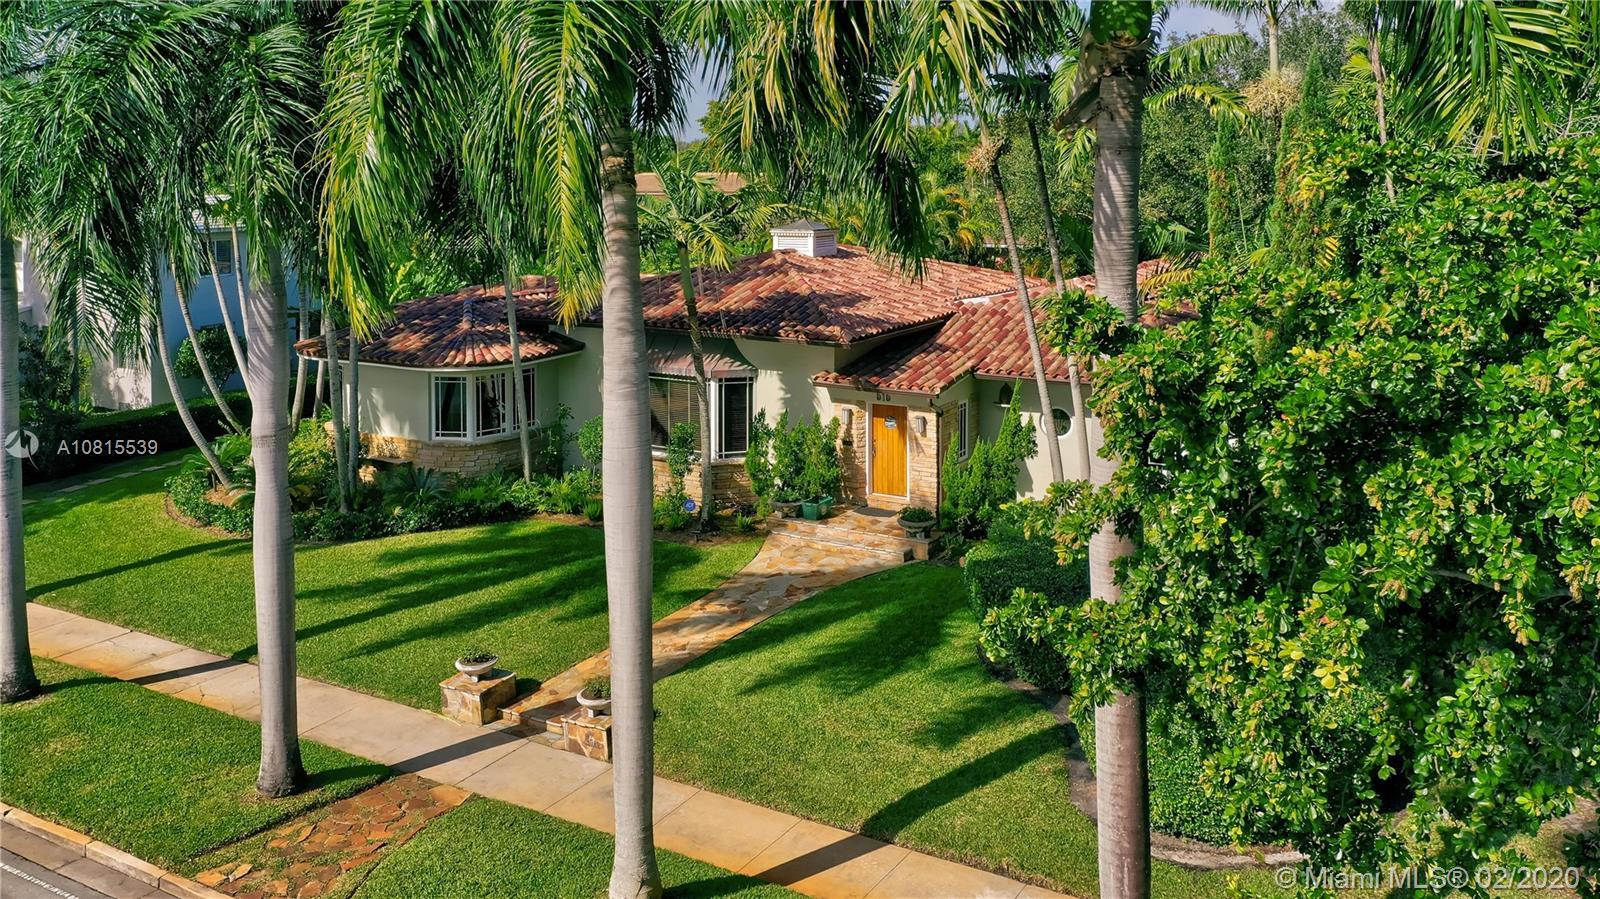 Spectacular 4 bed/4 bath home in prime Miami Shores location. Sitting on 1/3